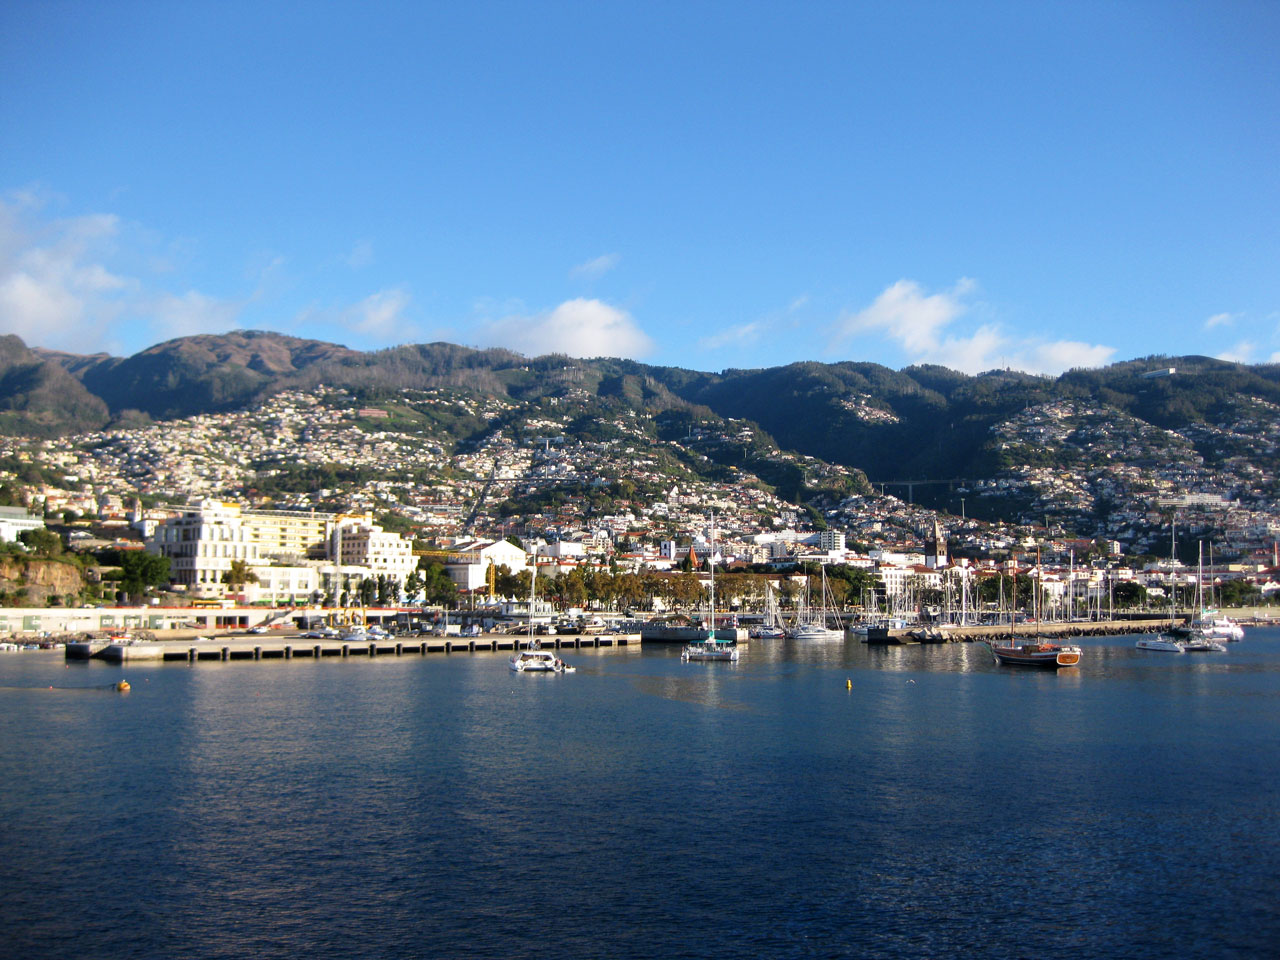 Funchal as seen from the bay